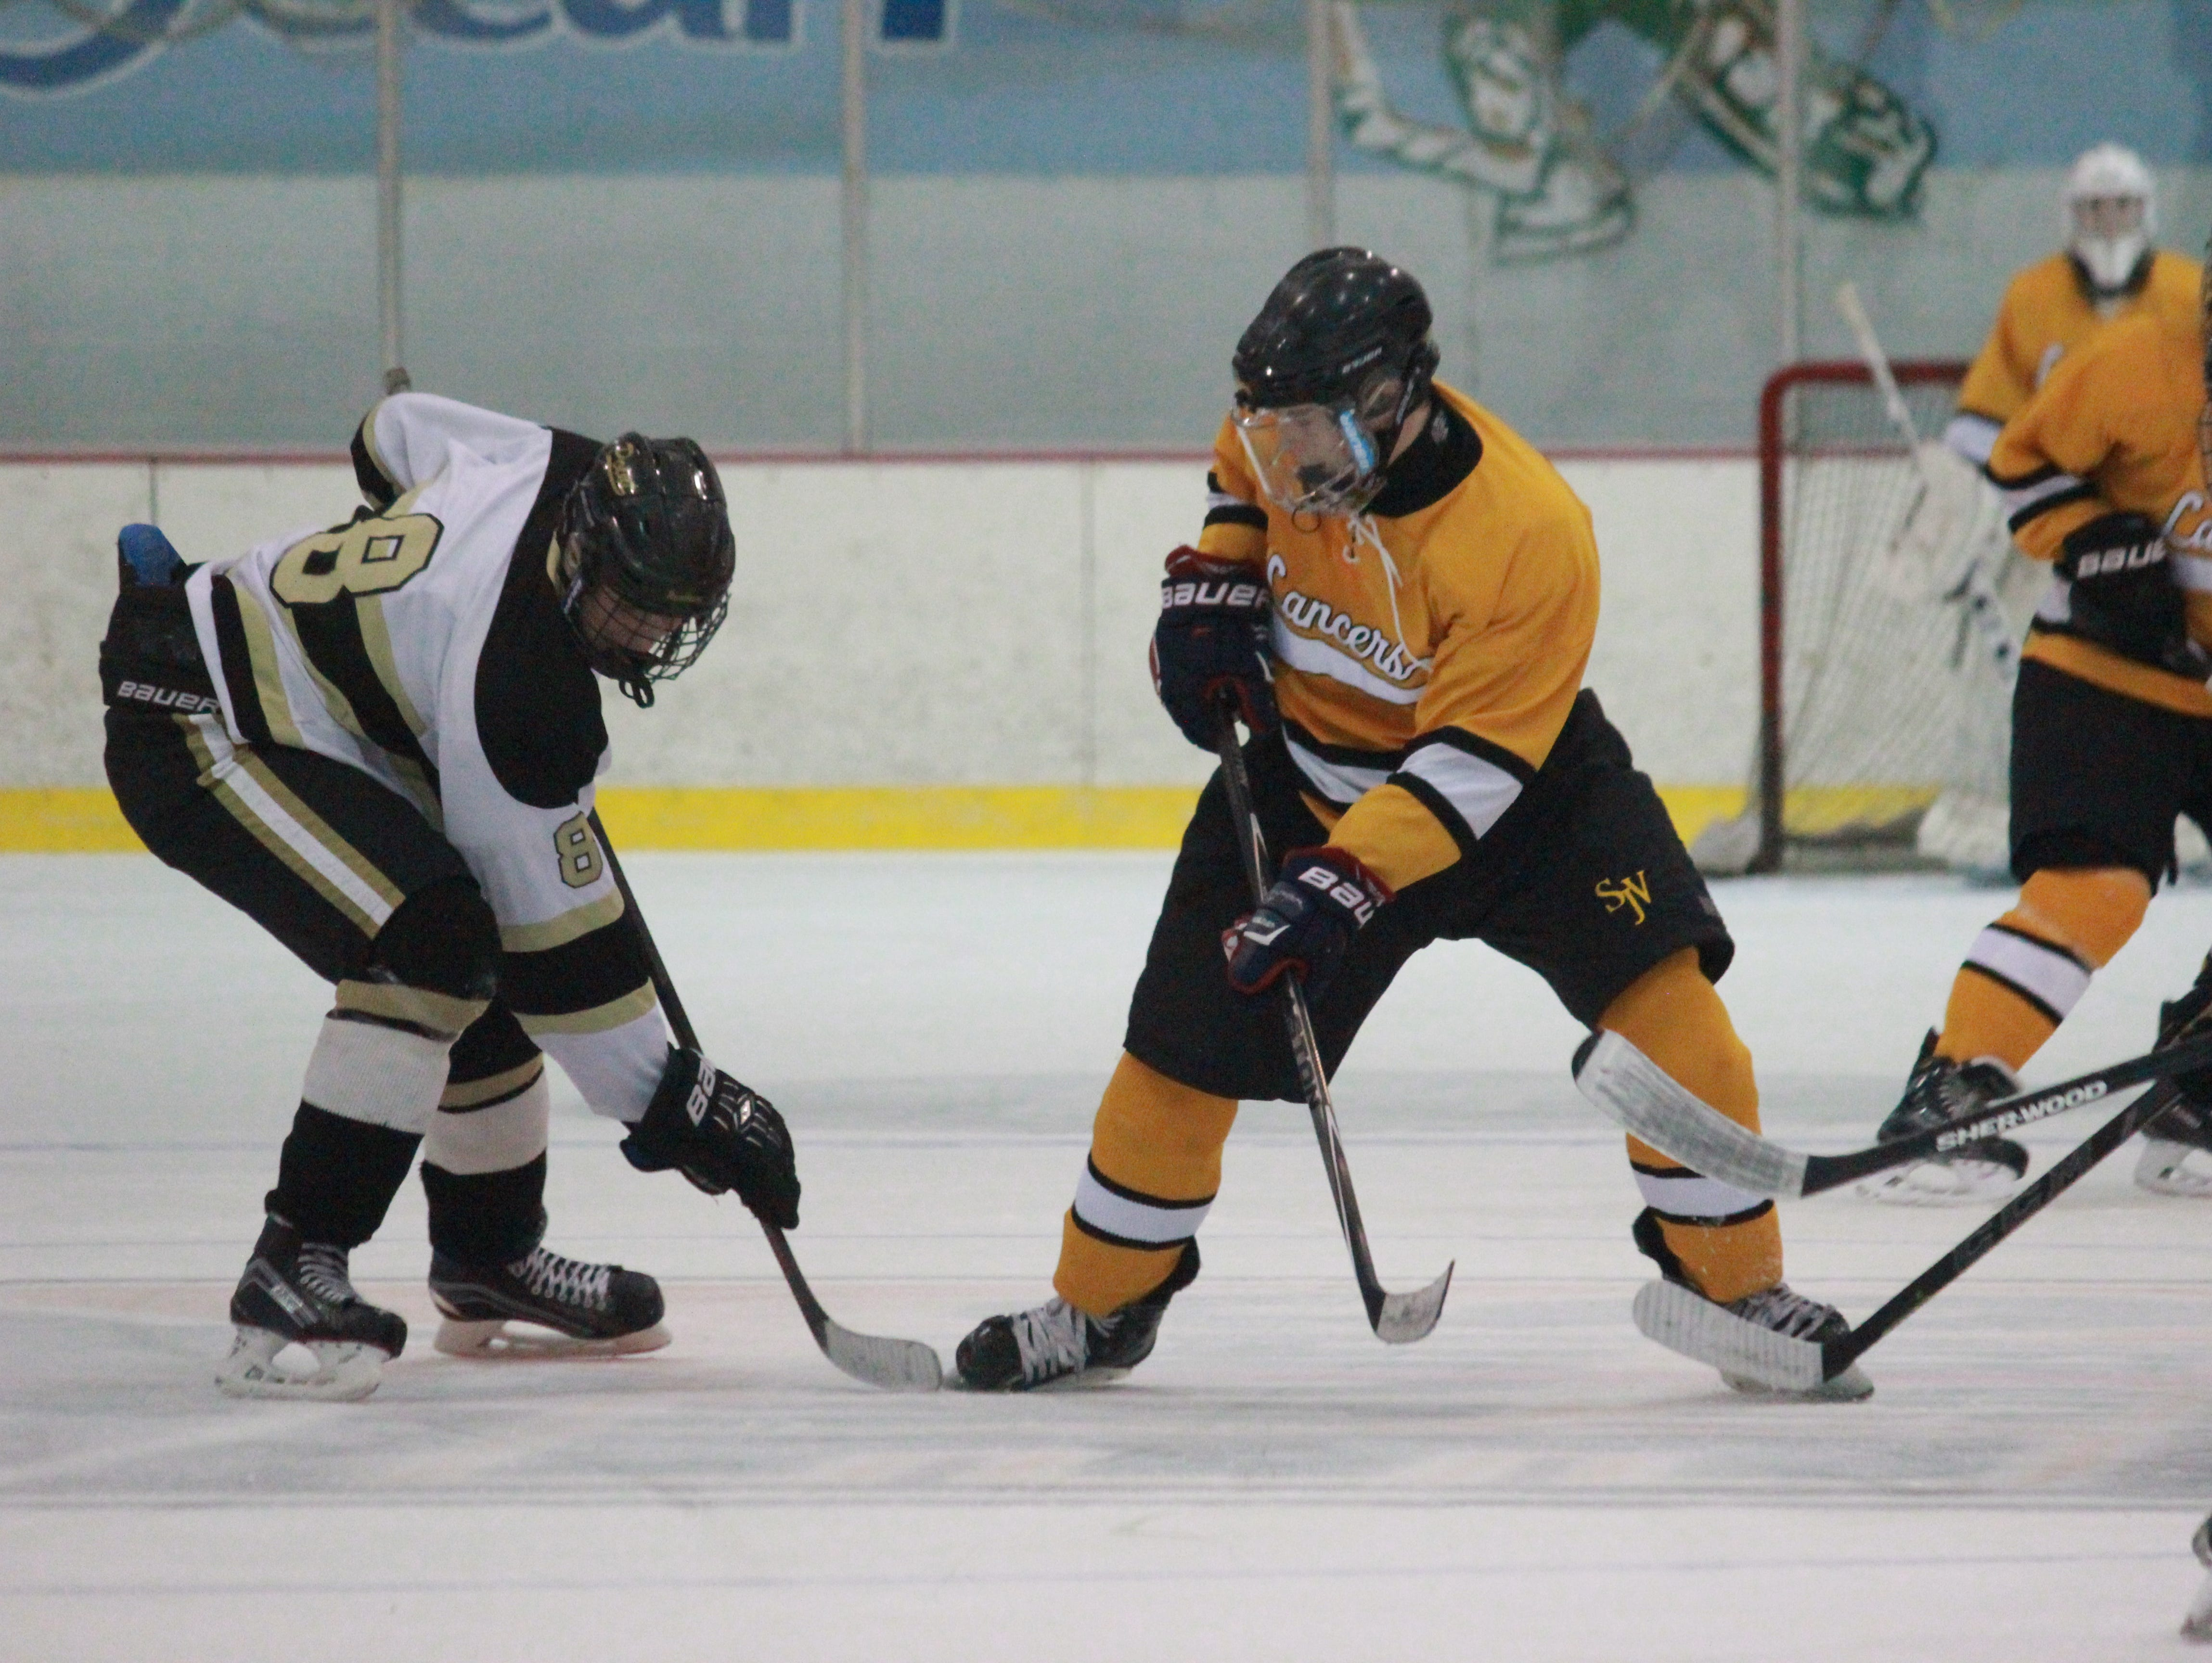 St. John Vianney skated to a 3-2 victory over Point Boro on Friday at the Ocean Ice Palace.